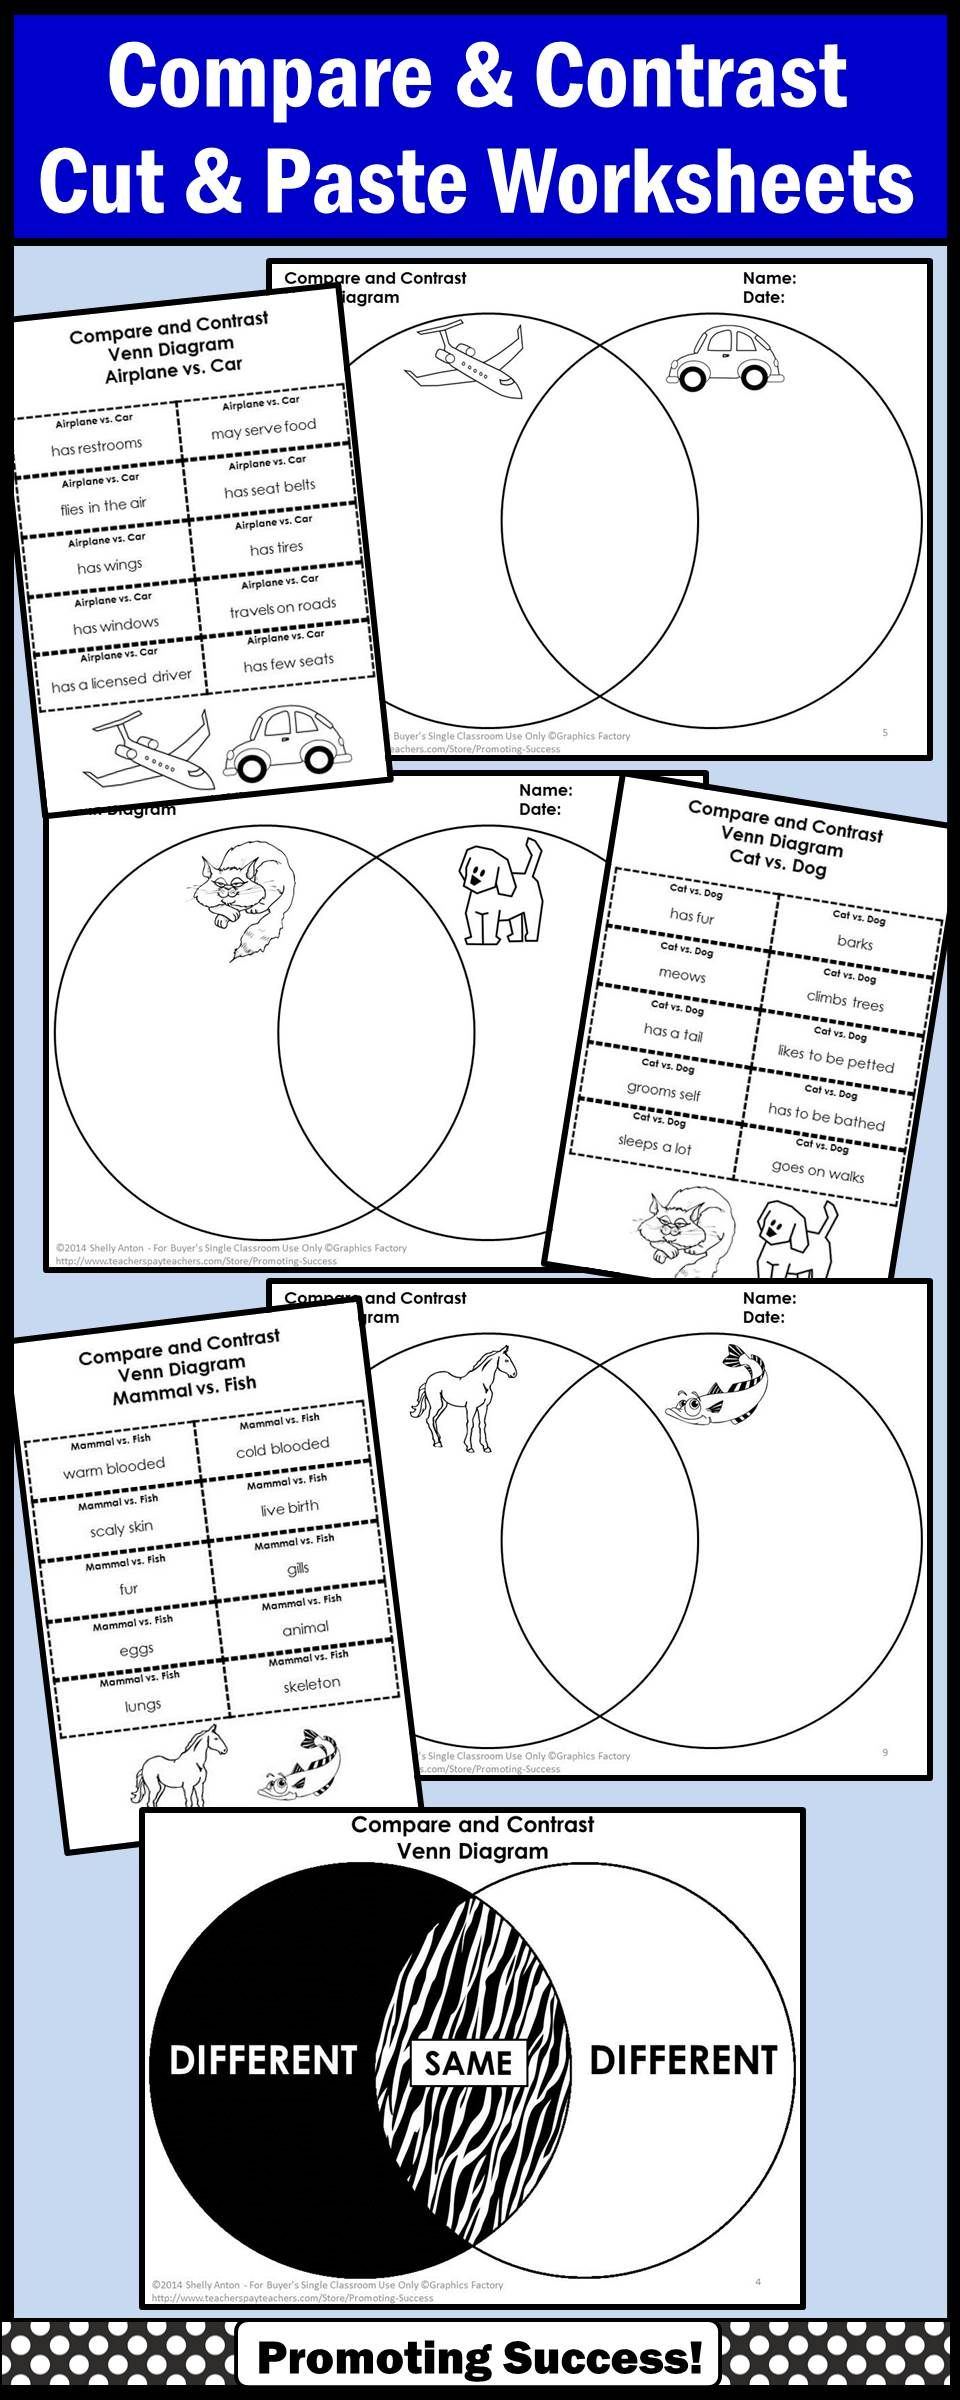 Compare and contrast activities venn diagram cut and paste graphic compare and contrast with venn diagrams students will use printable venn diagram worksheets to compare ccuart Choice Image